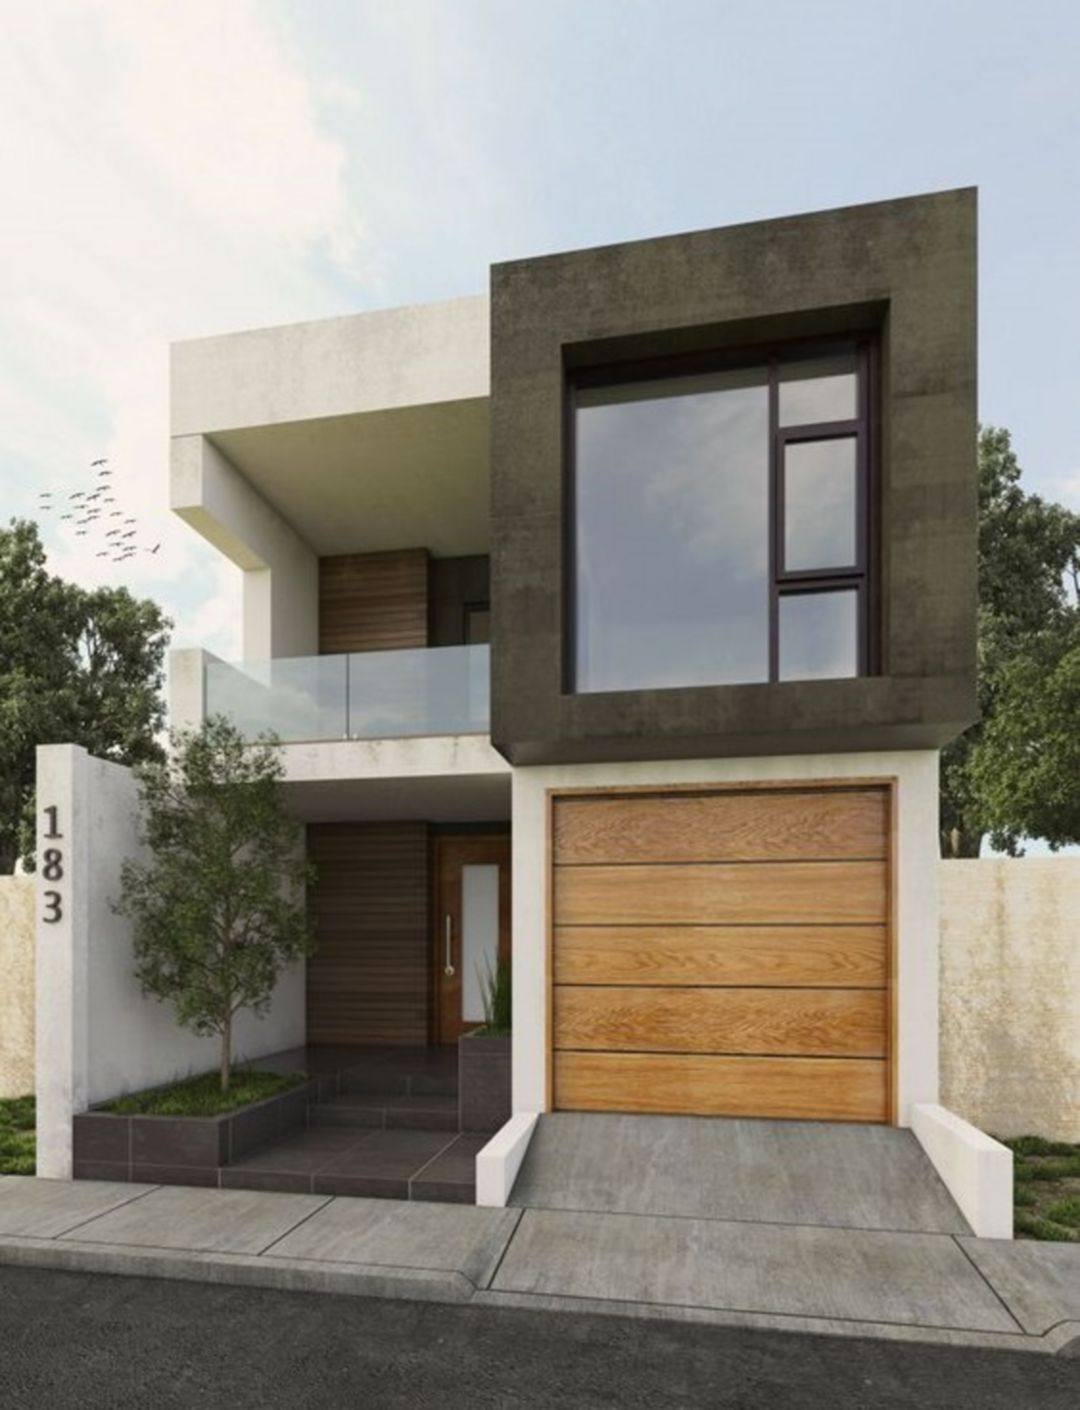 Small Modern Homes Images Beautiful 13 Modern Minimalist Tiny House Design Ideas for Your